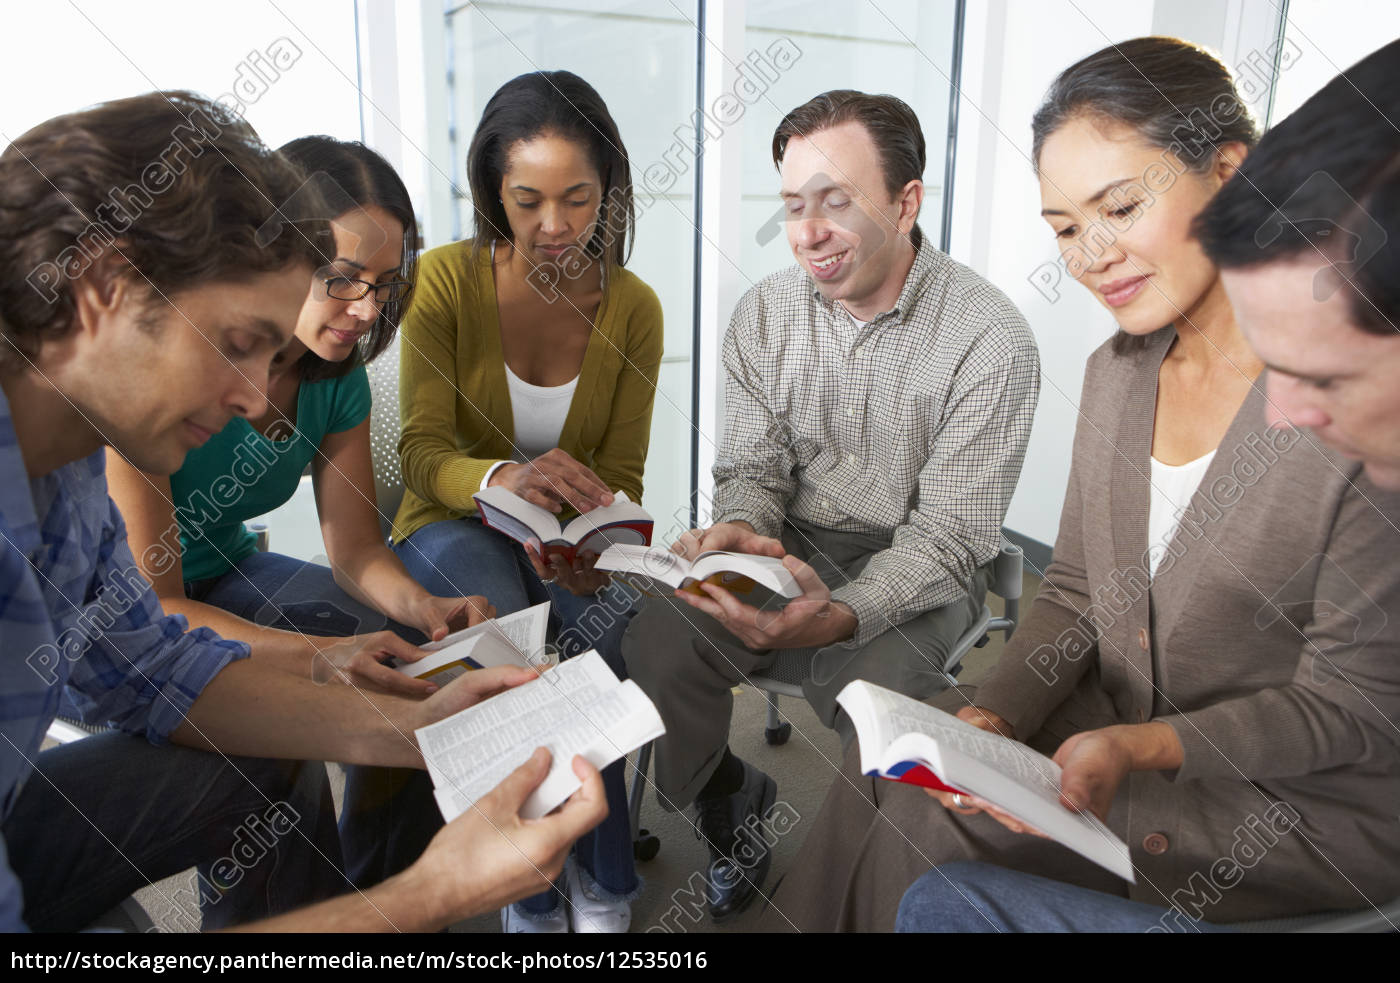 bible, group, reading, together - 12535016